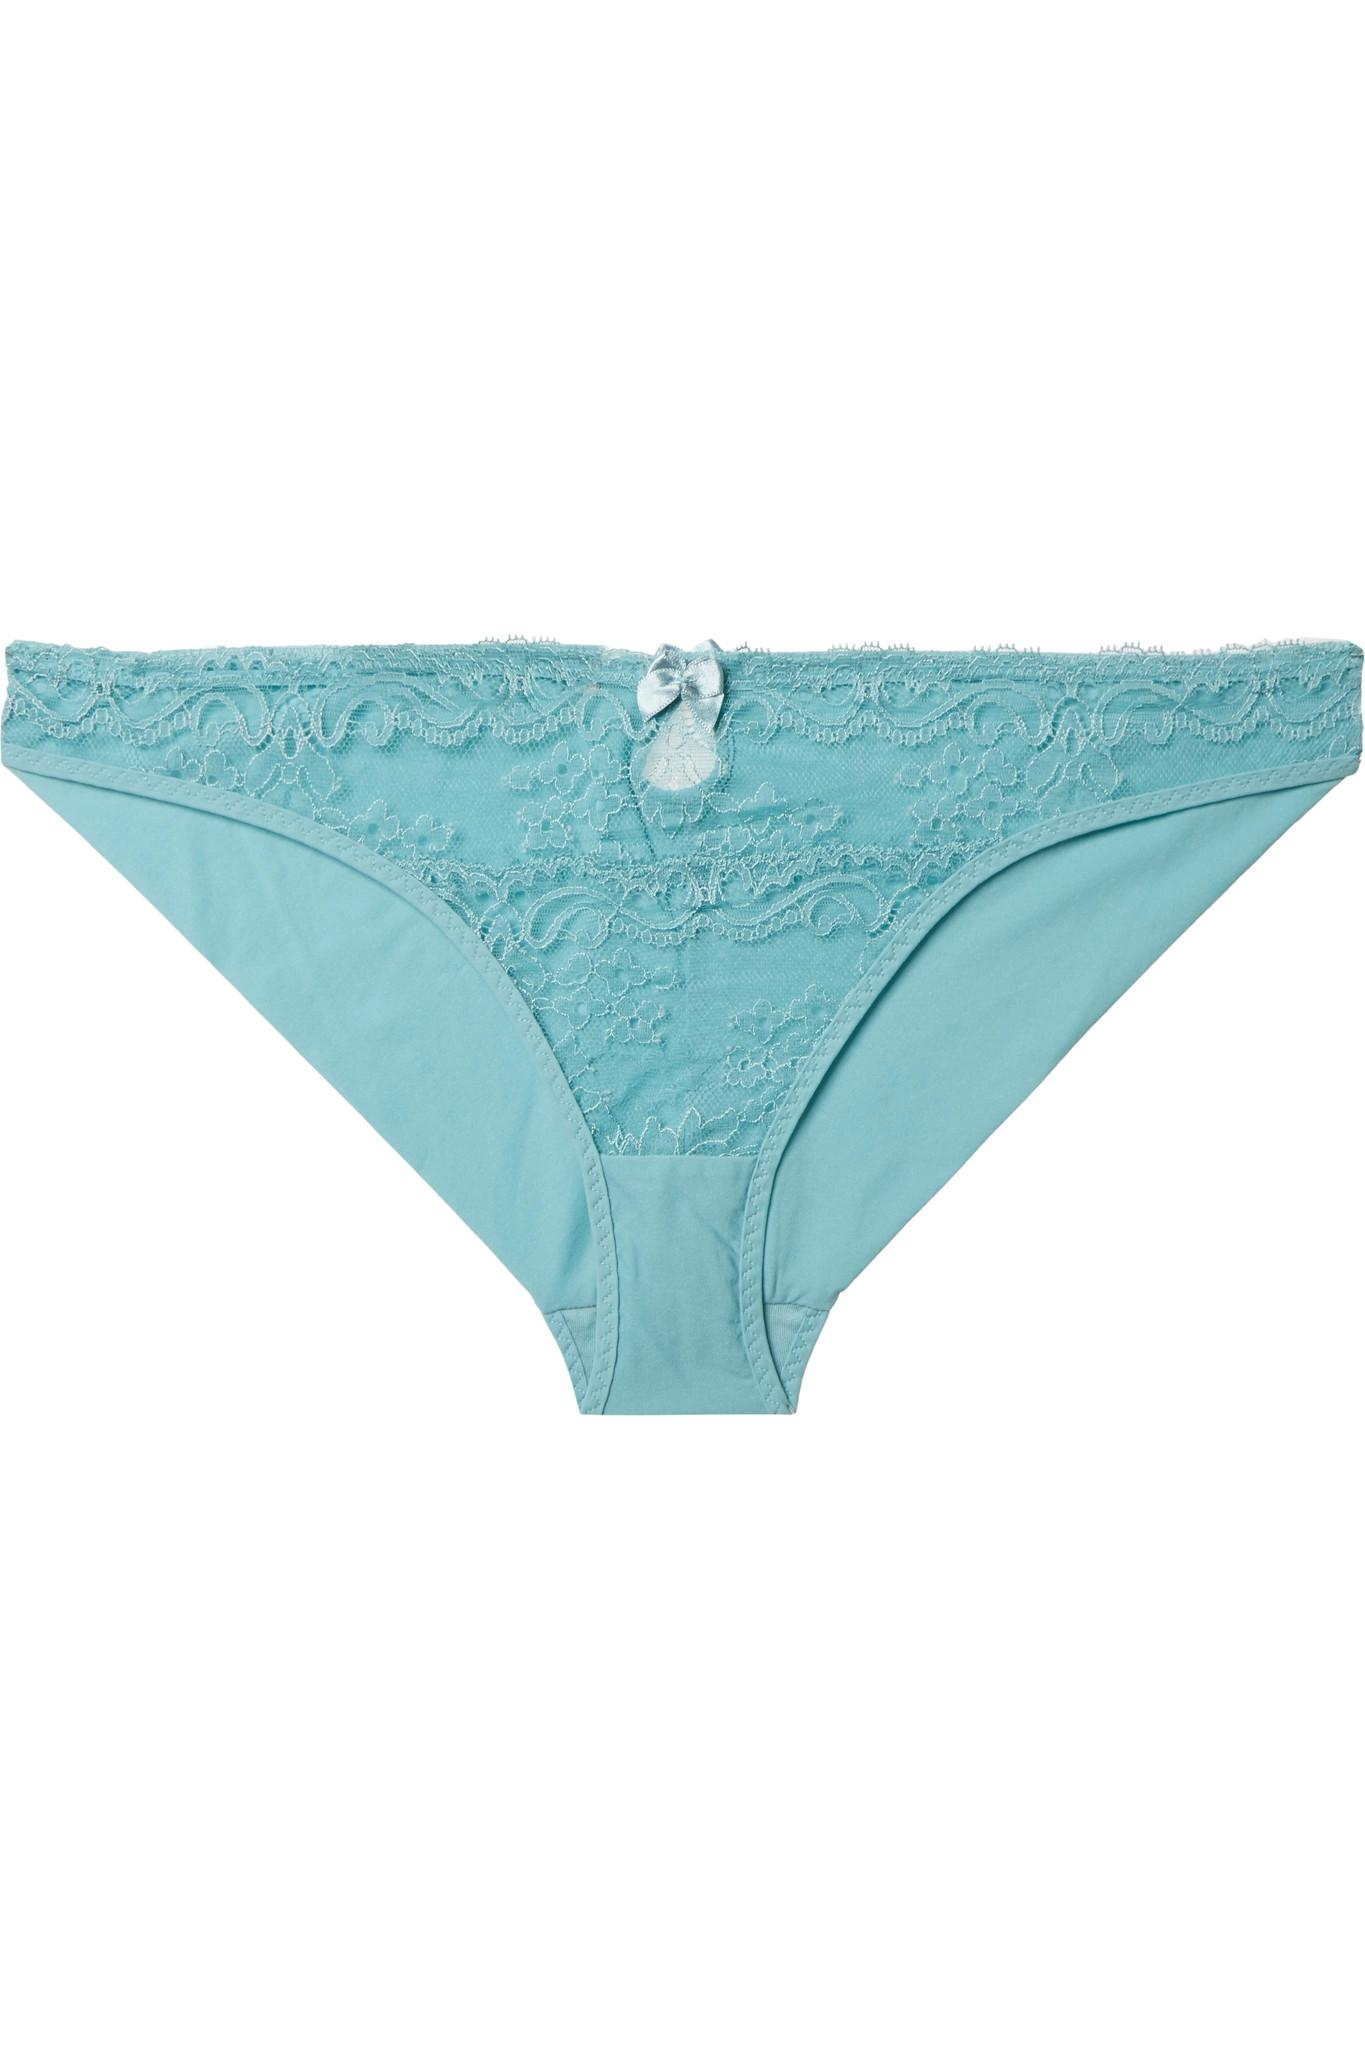 Poppy Playing Cutout Stretch-jersey And Leavers Lace Briefs - Blue Stella McCartney Free Shipping Really Under 70 Dollars Discount Limited Edition Outlet Eastbay Cheap With Mastercard yhZyl7